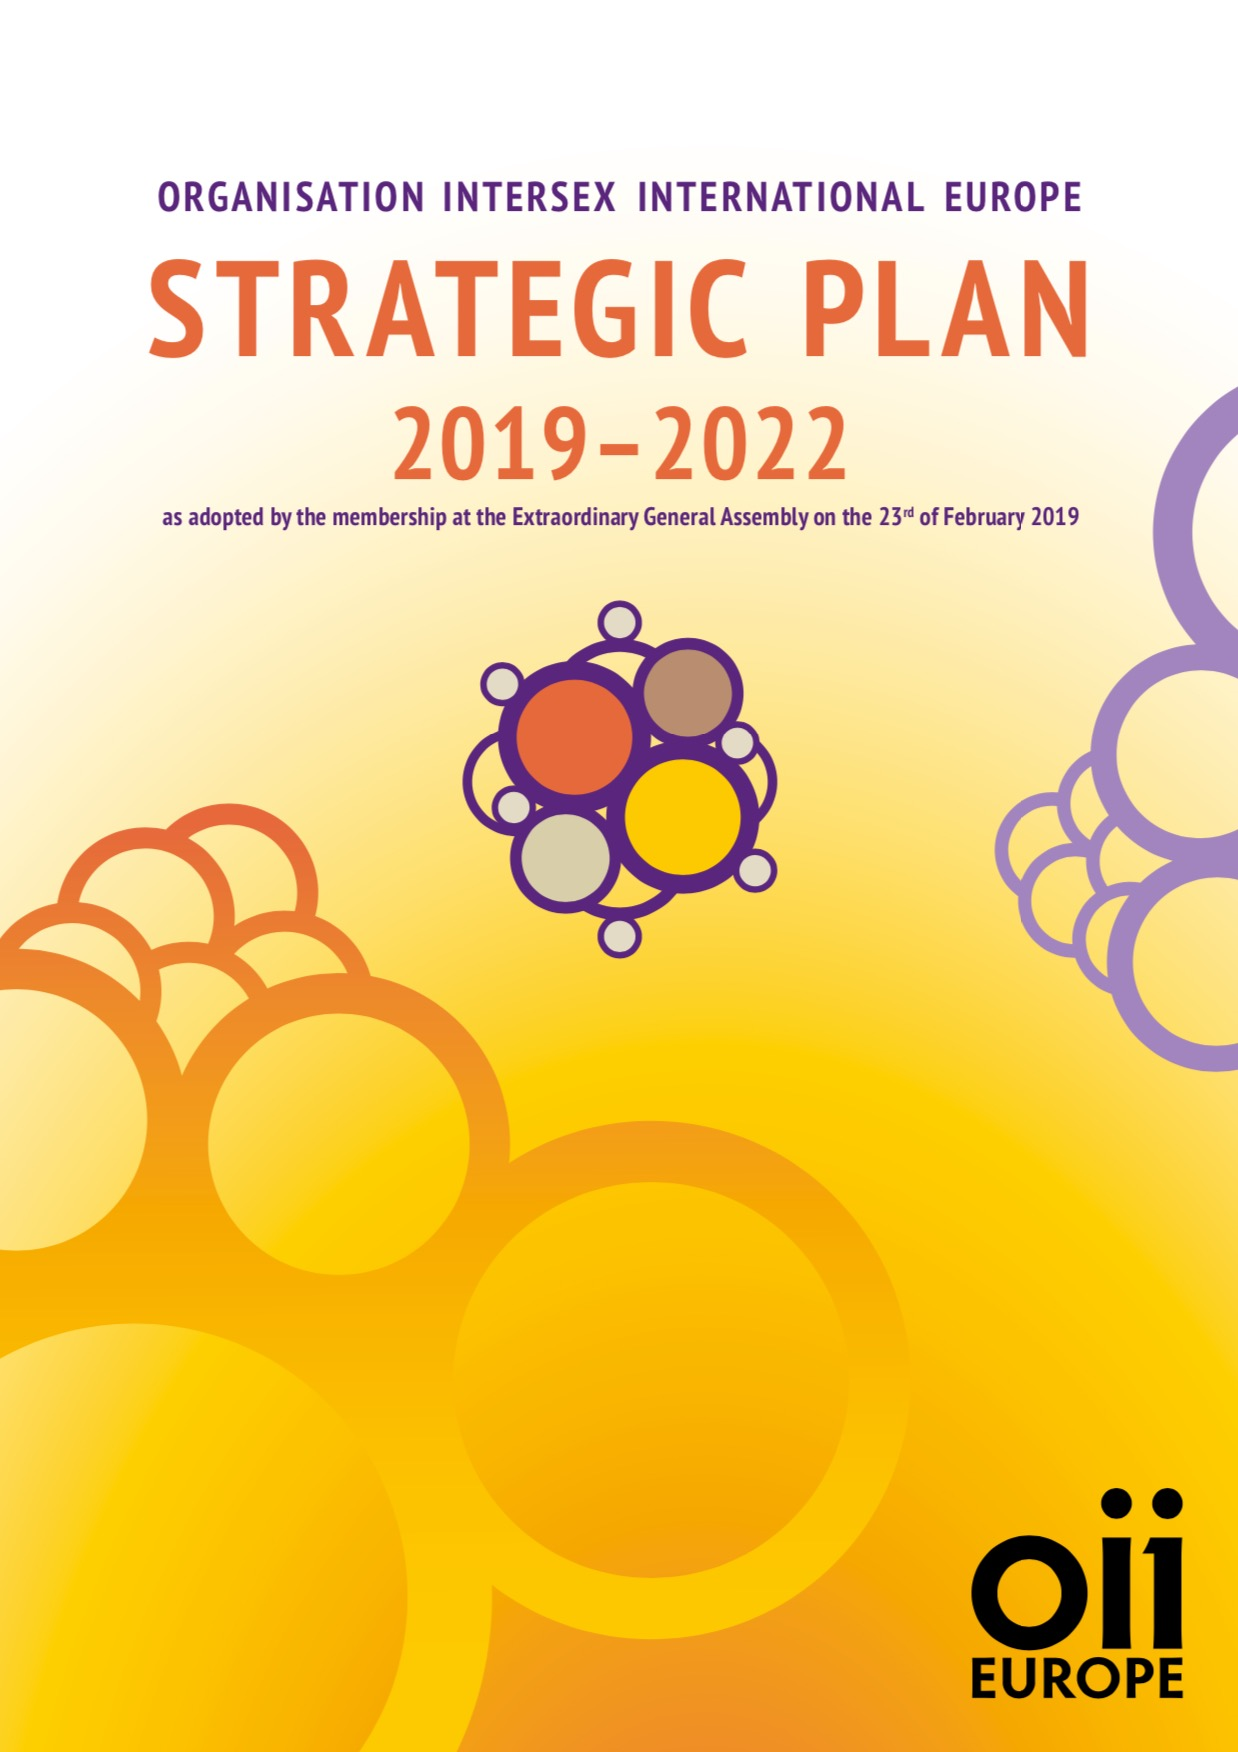 OII Europe Strategic Plan 2019 – 2022